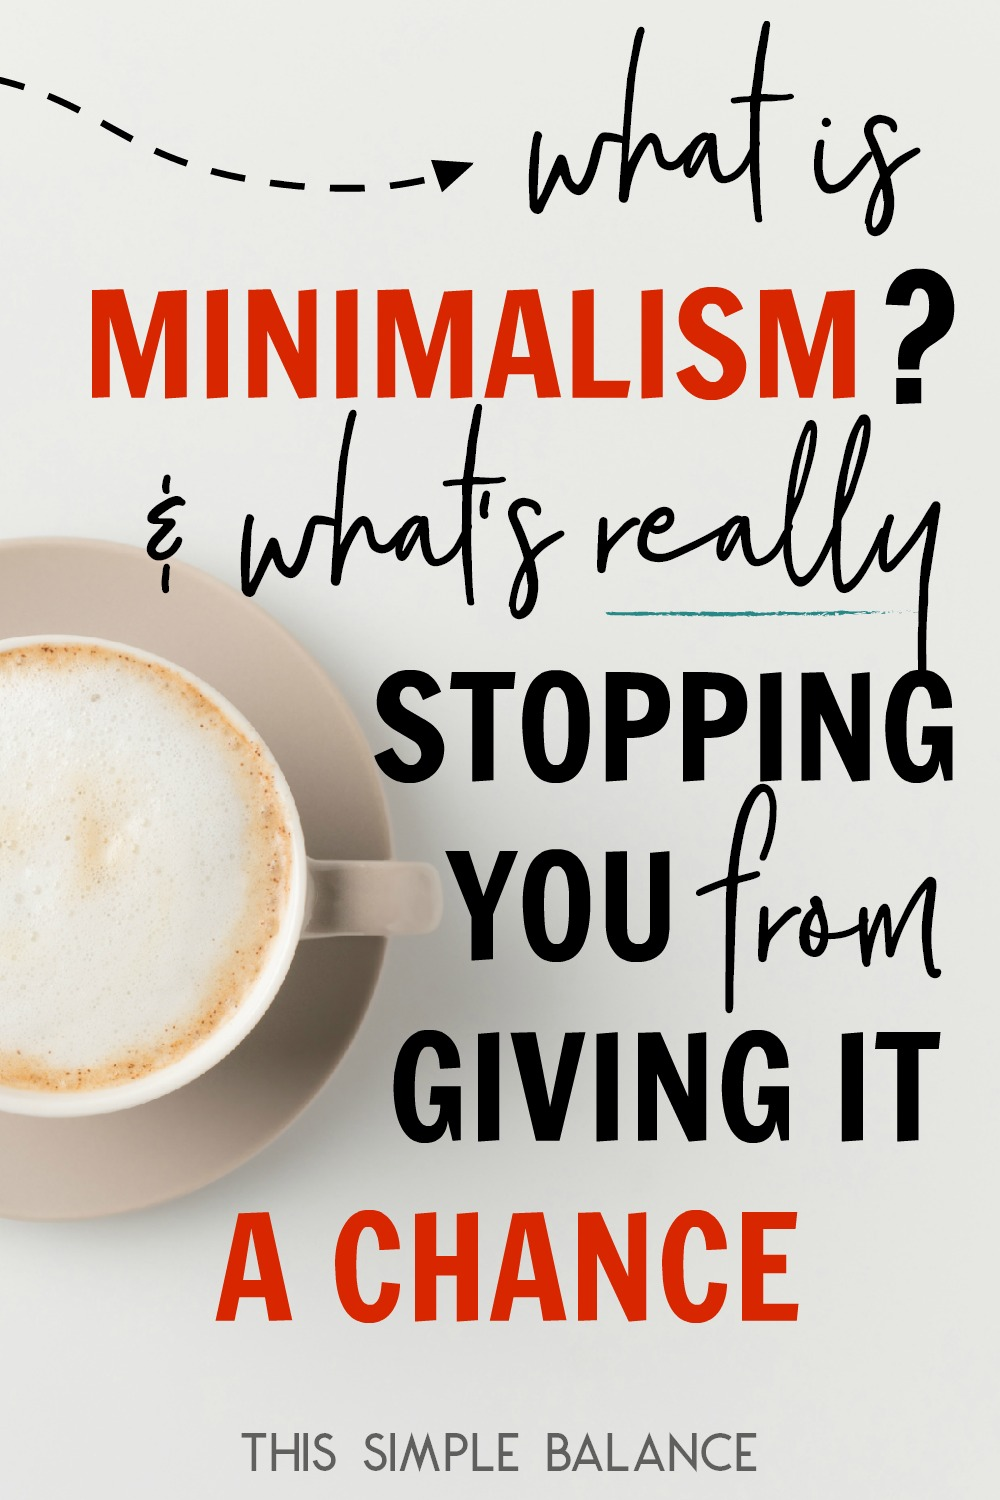 What is minimalism really about? Get all your questions answered - to what minimalism IS and what it's NOT, so you can stop letting misconceptions hold you back from experiencing all the minimalism has to offer.